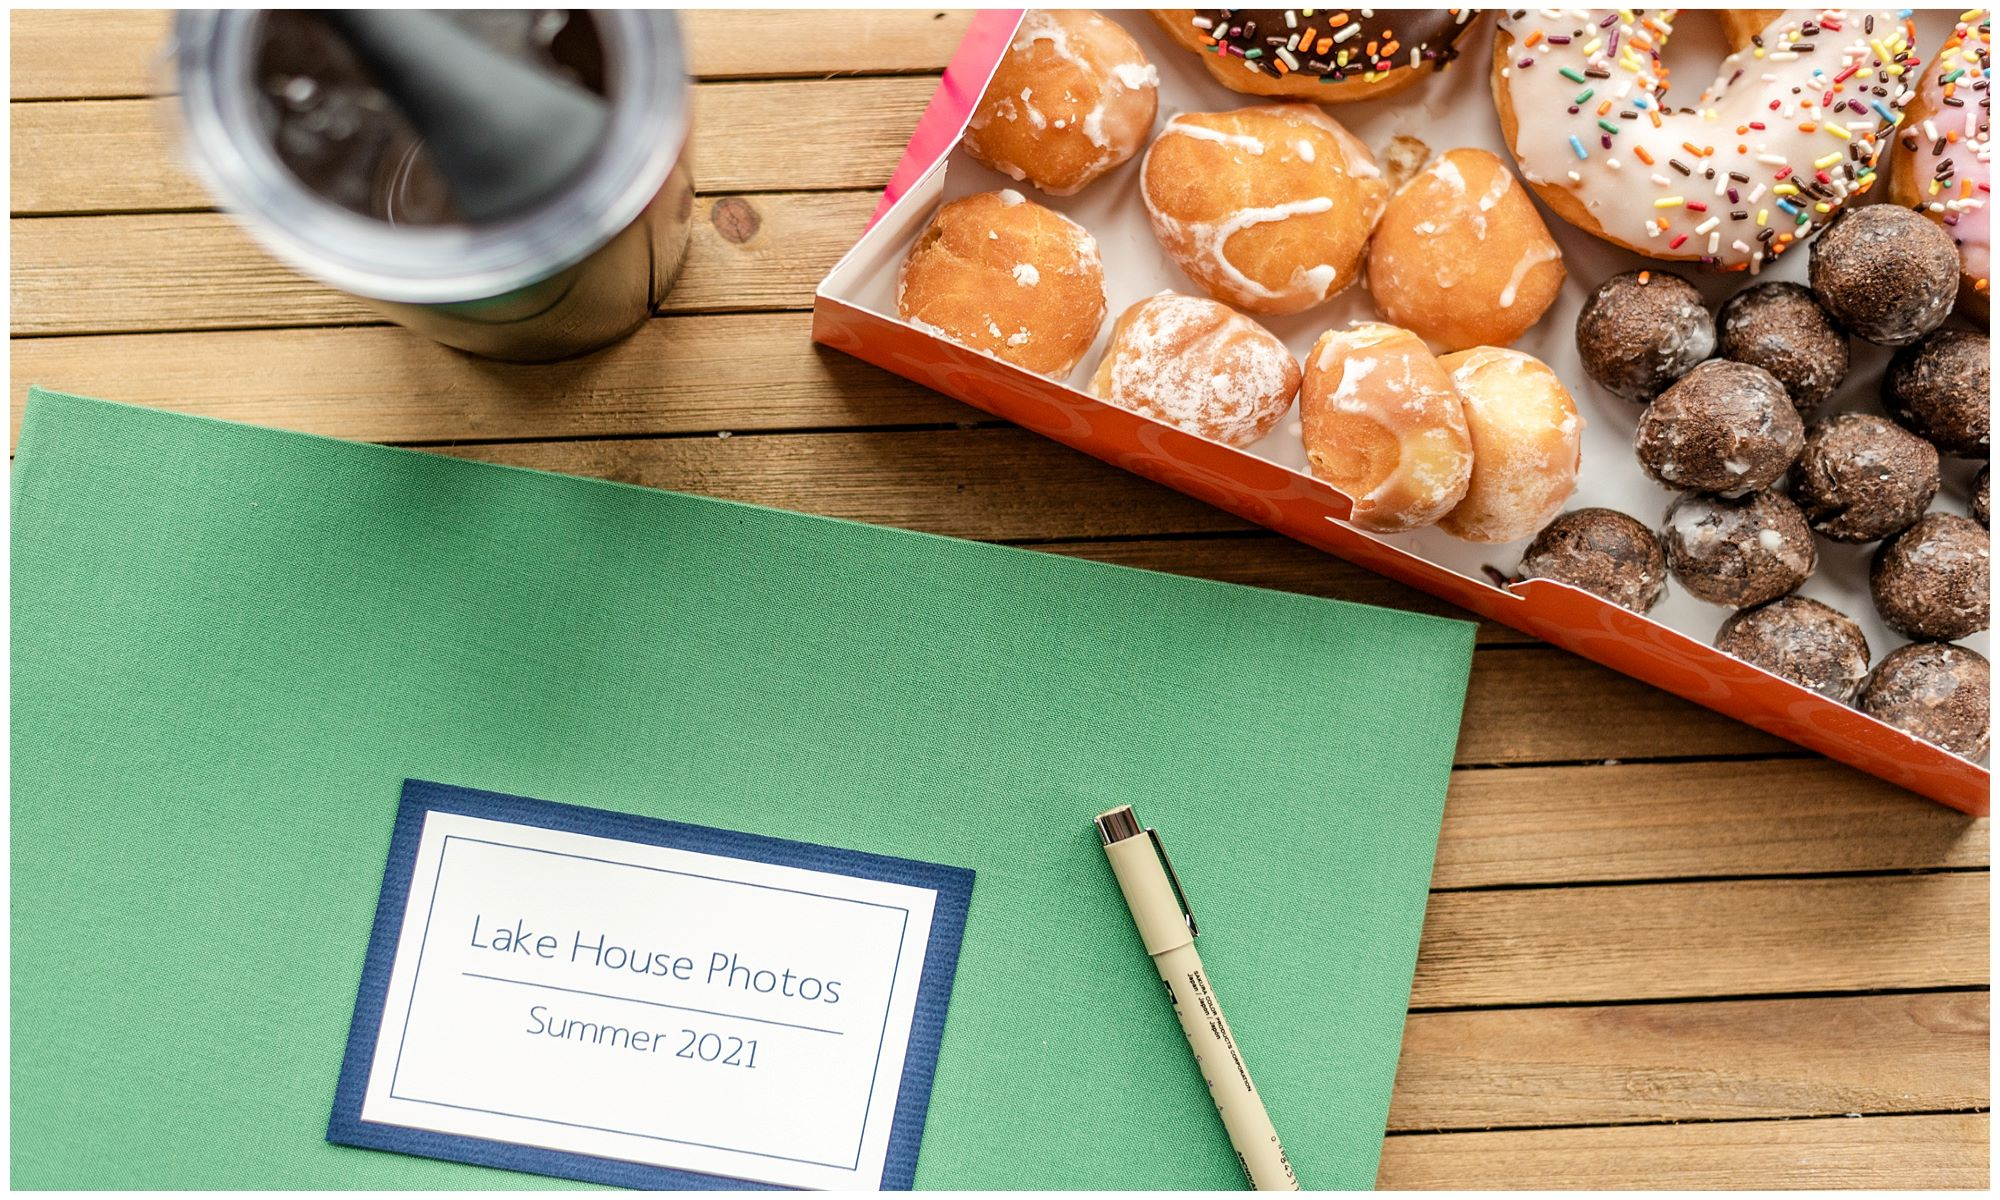 Vacation Home Guest Book green cover next to donuts and coffee on a wooden background